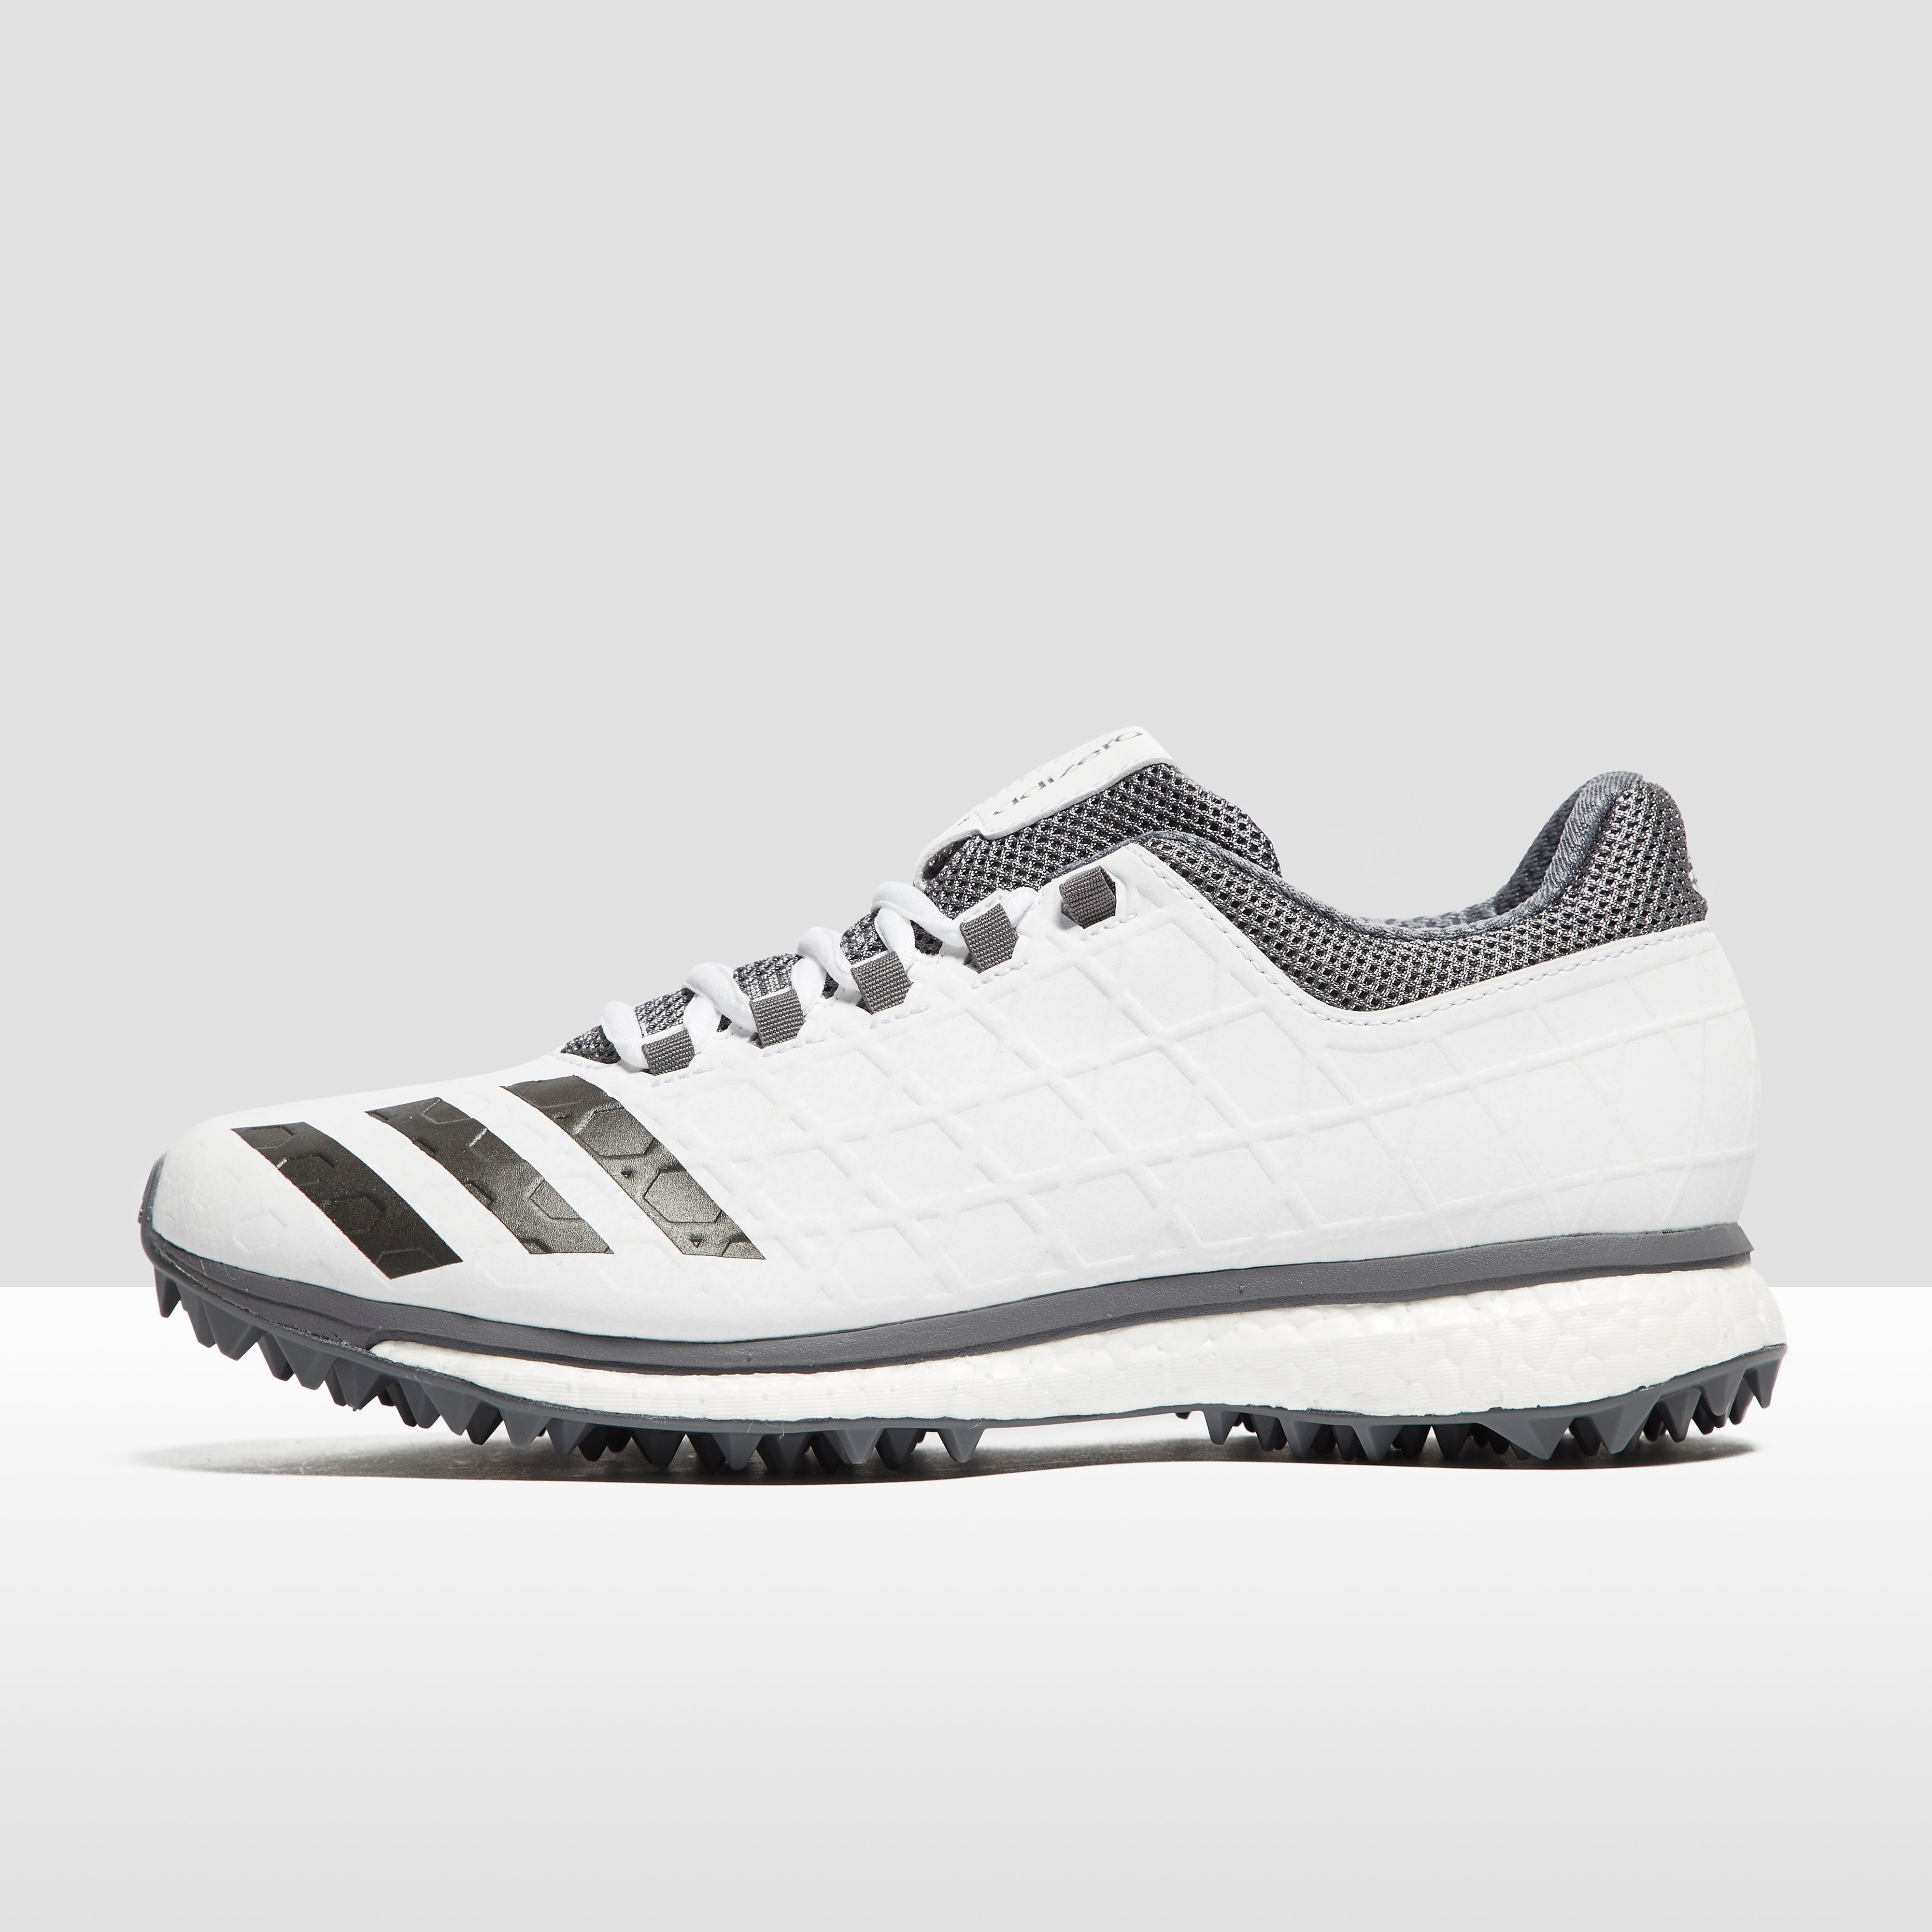 adidas ADIZERO BOOST SL22 MEN'S CRICKET SHOES